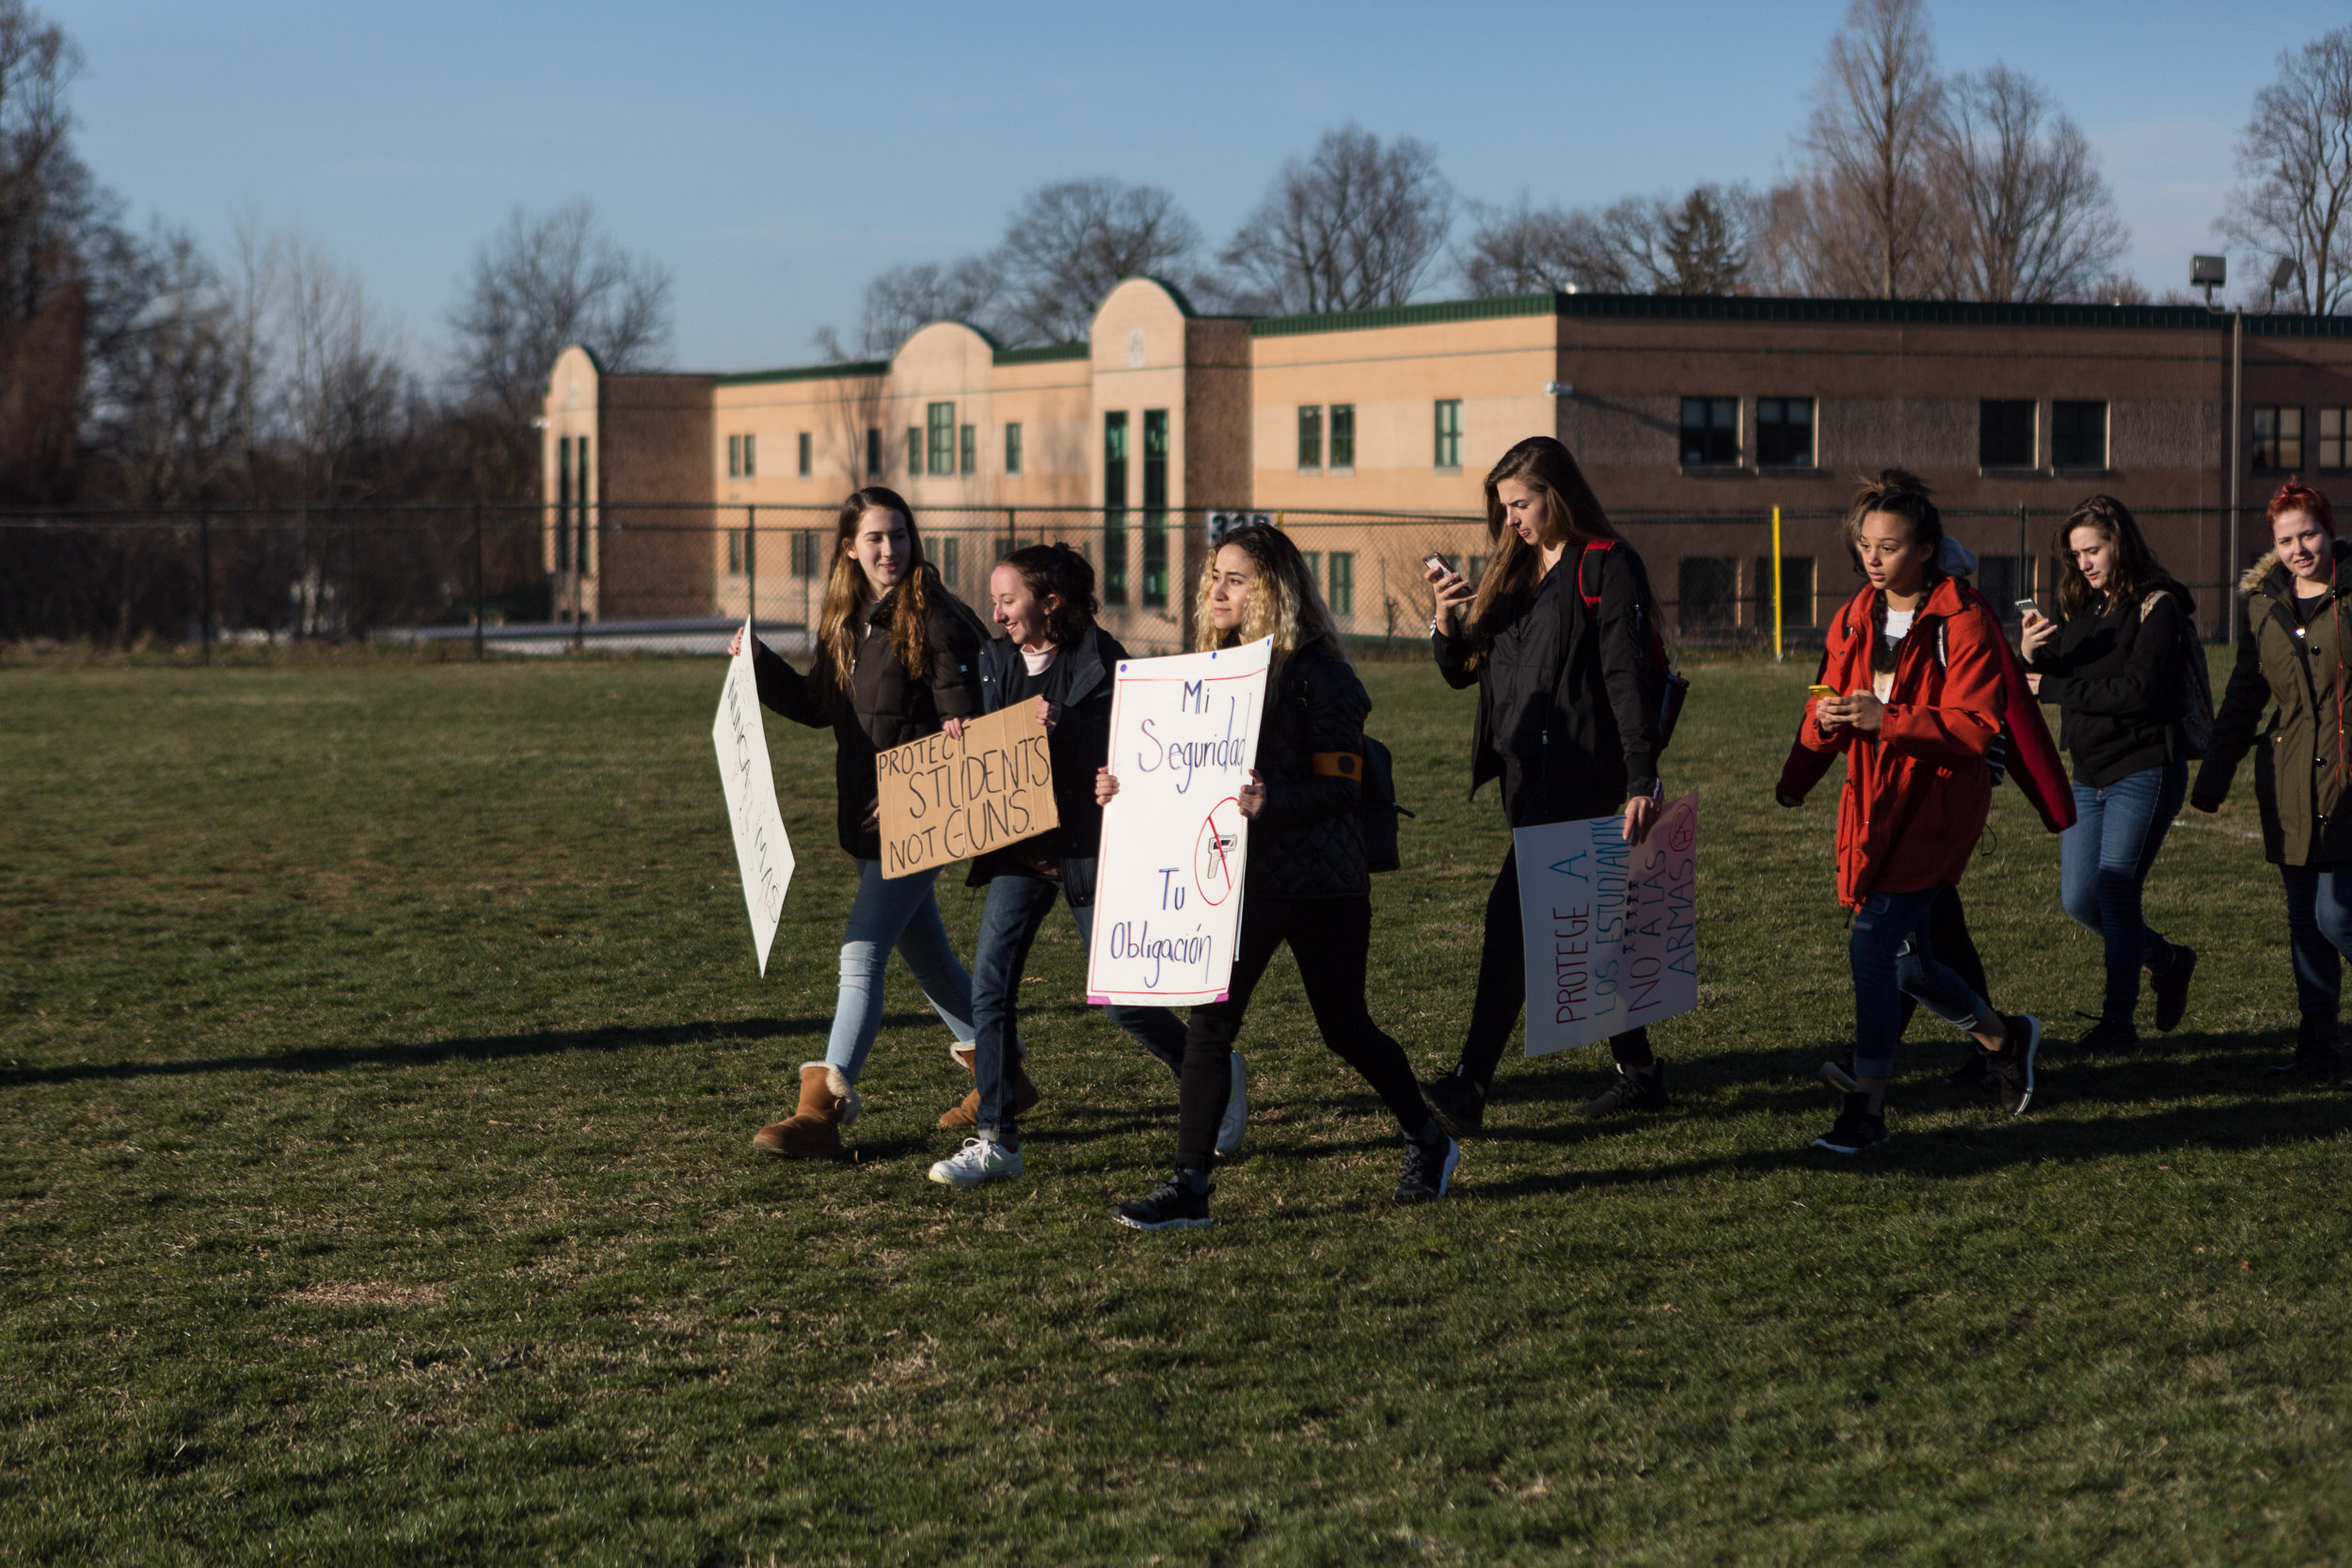 """I'm walking out today because as a woman, as a student, as a Latina, as a person of passion, I feel like it is my duty to be part of a movement which deeply affects people just like me. I'm the representative for Einstein local students for gun control and it was a collective effort of me and other applicants from other high schools to organize the whole county and then me and other organizers at my school specifically to organize our school.  We've been planning this for about three weeks now. It's been a headache, it's been super stressful, definitely sacrificing a lot—but it's all worth it in the end. I think the sacrifices of all the students, organizers, and representatives have made it so worth it for something that hits so deep.   There's definitely some pushback on social media. People will comment and say hurtful things, but honestly like we all understand what we're doing. We all understand how important it is to stay true to something that you are putting your heart into. So no matter what people say we're still going to do what we're going to do and be successful"" -Sofia Hidalgo, student at Albert Einstein High School, age 15"